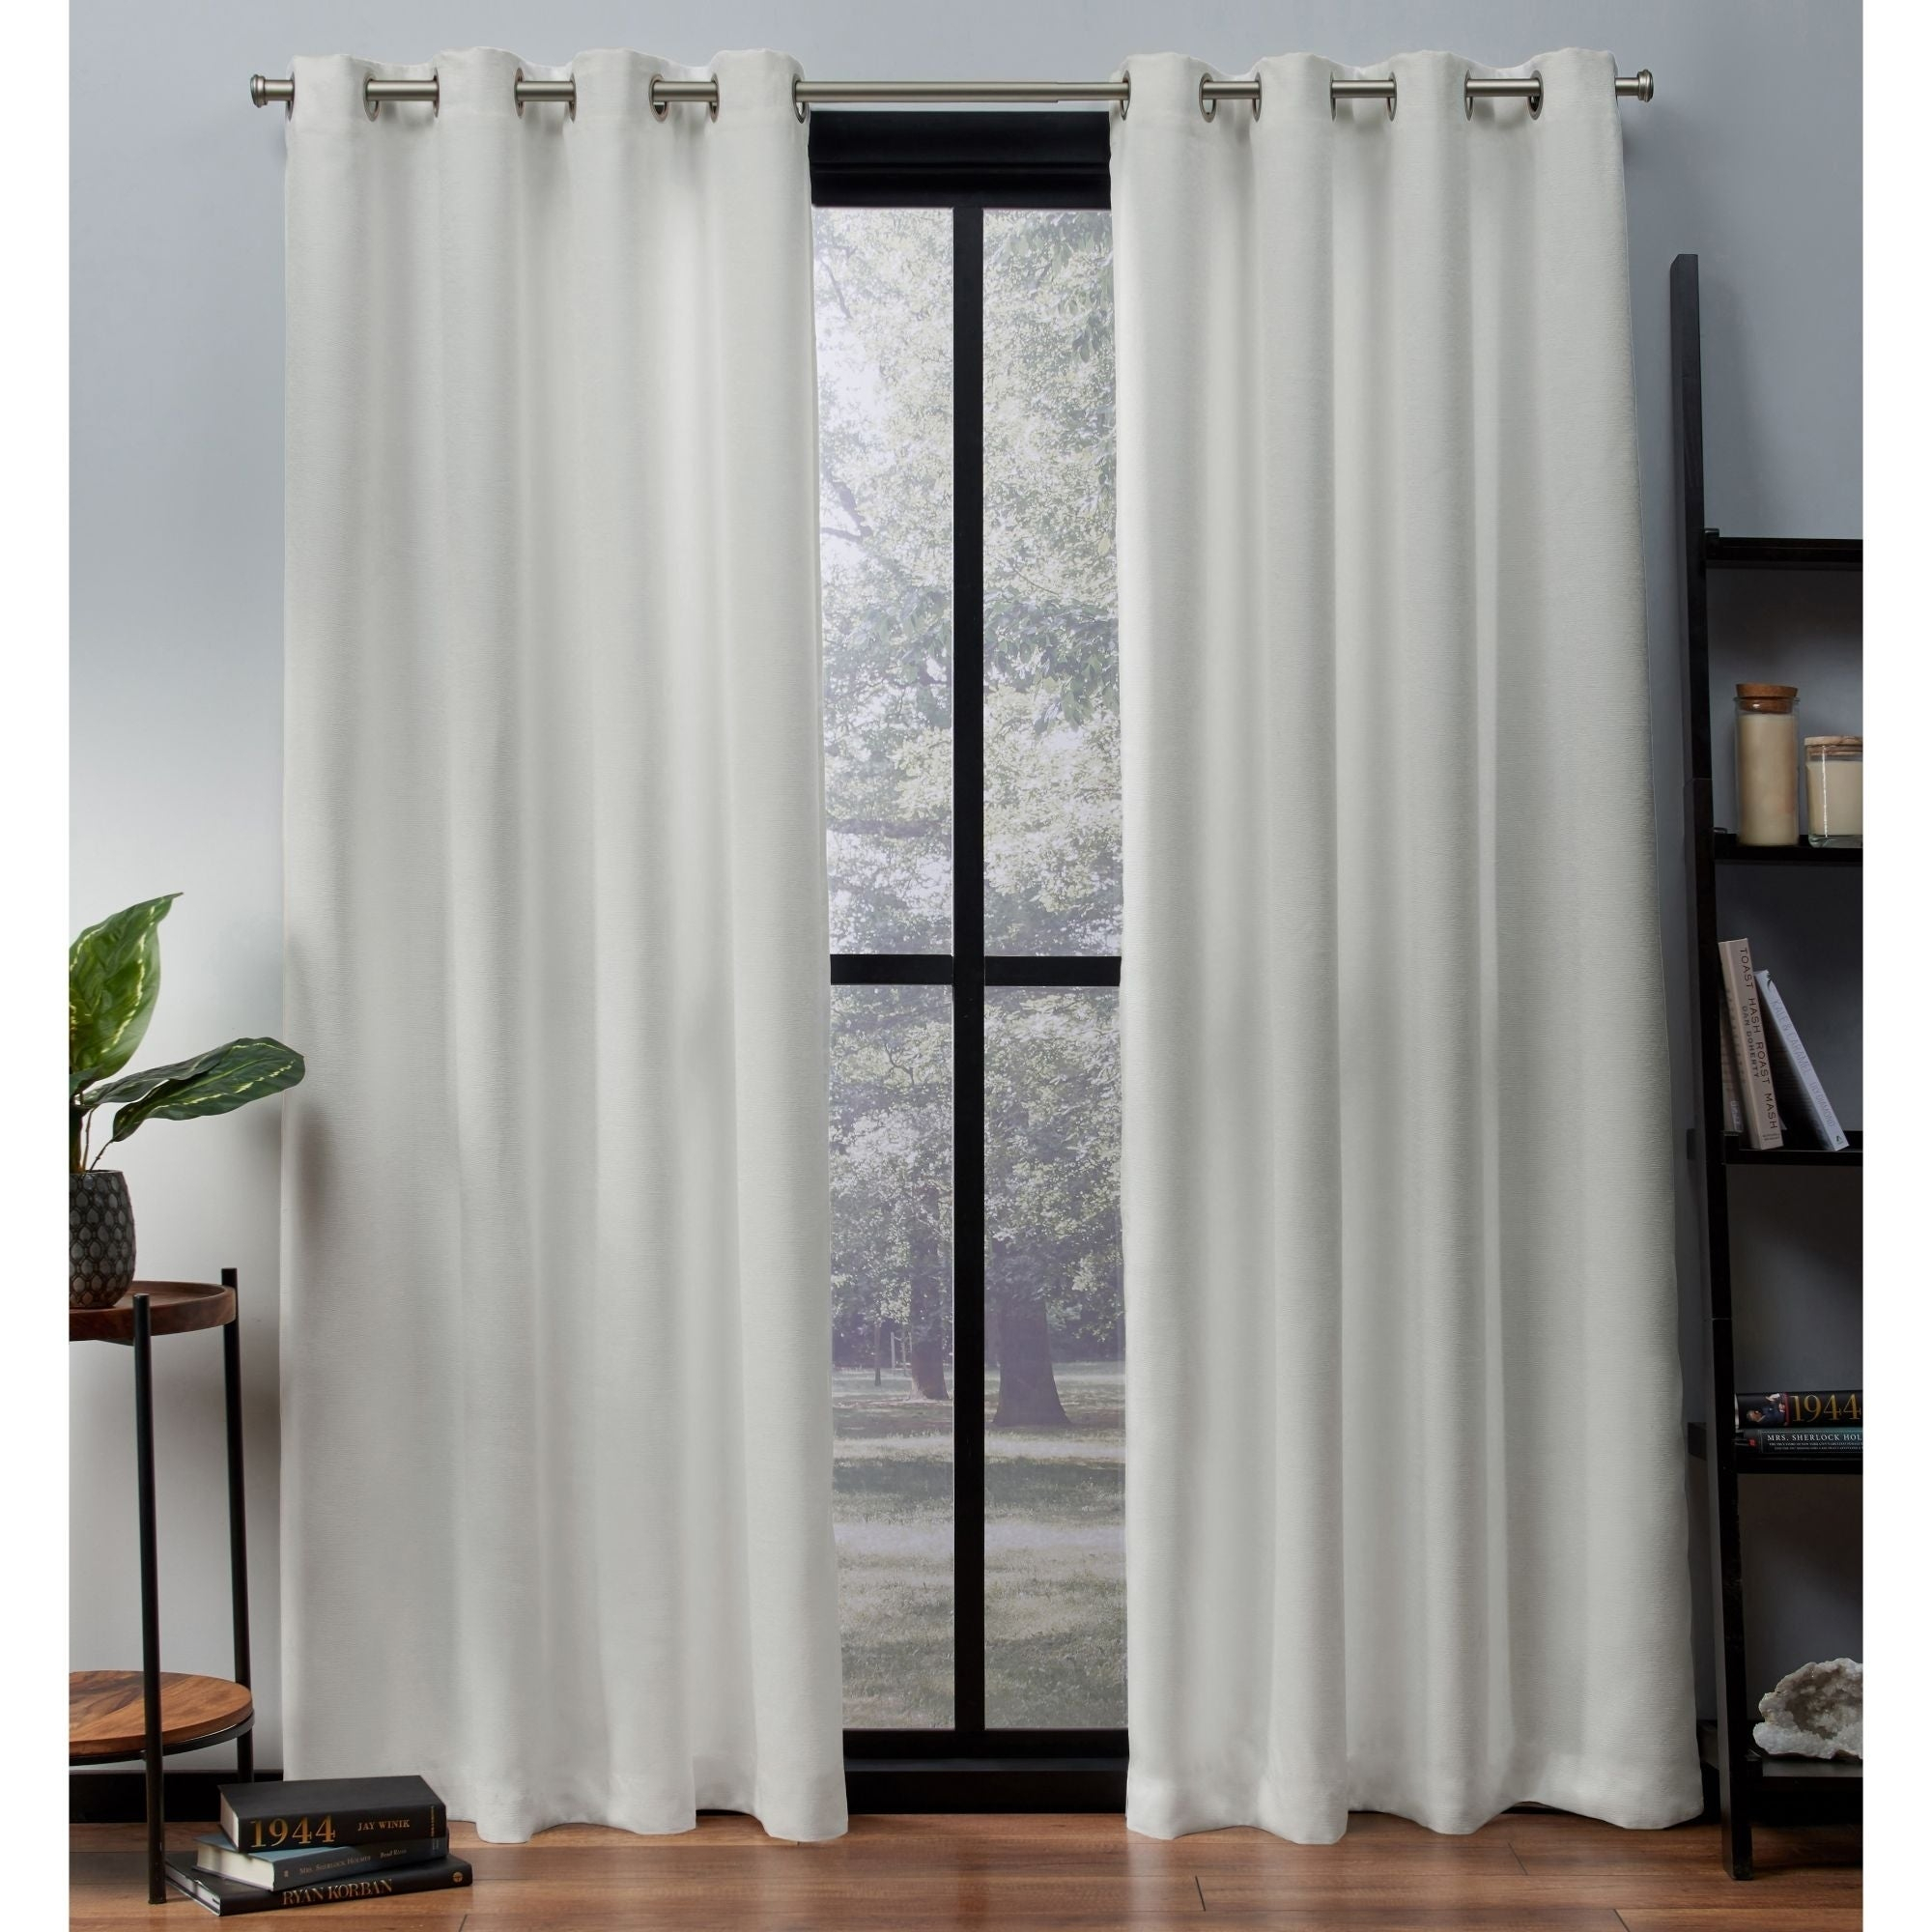 Ati Home Oxford Sateen Woven Blackout Grommet Top Curtain Panel Pair Within Oxford Sateen Woven Blackout Grommet Top Curtain Panel Pairs (View 2 of 20)